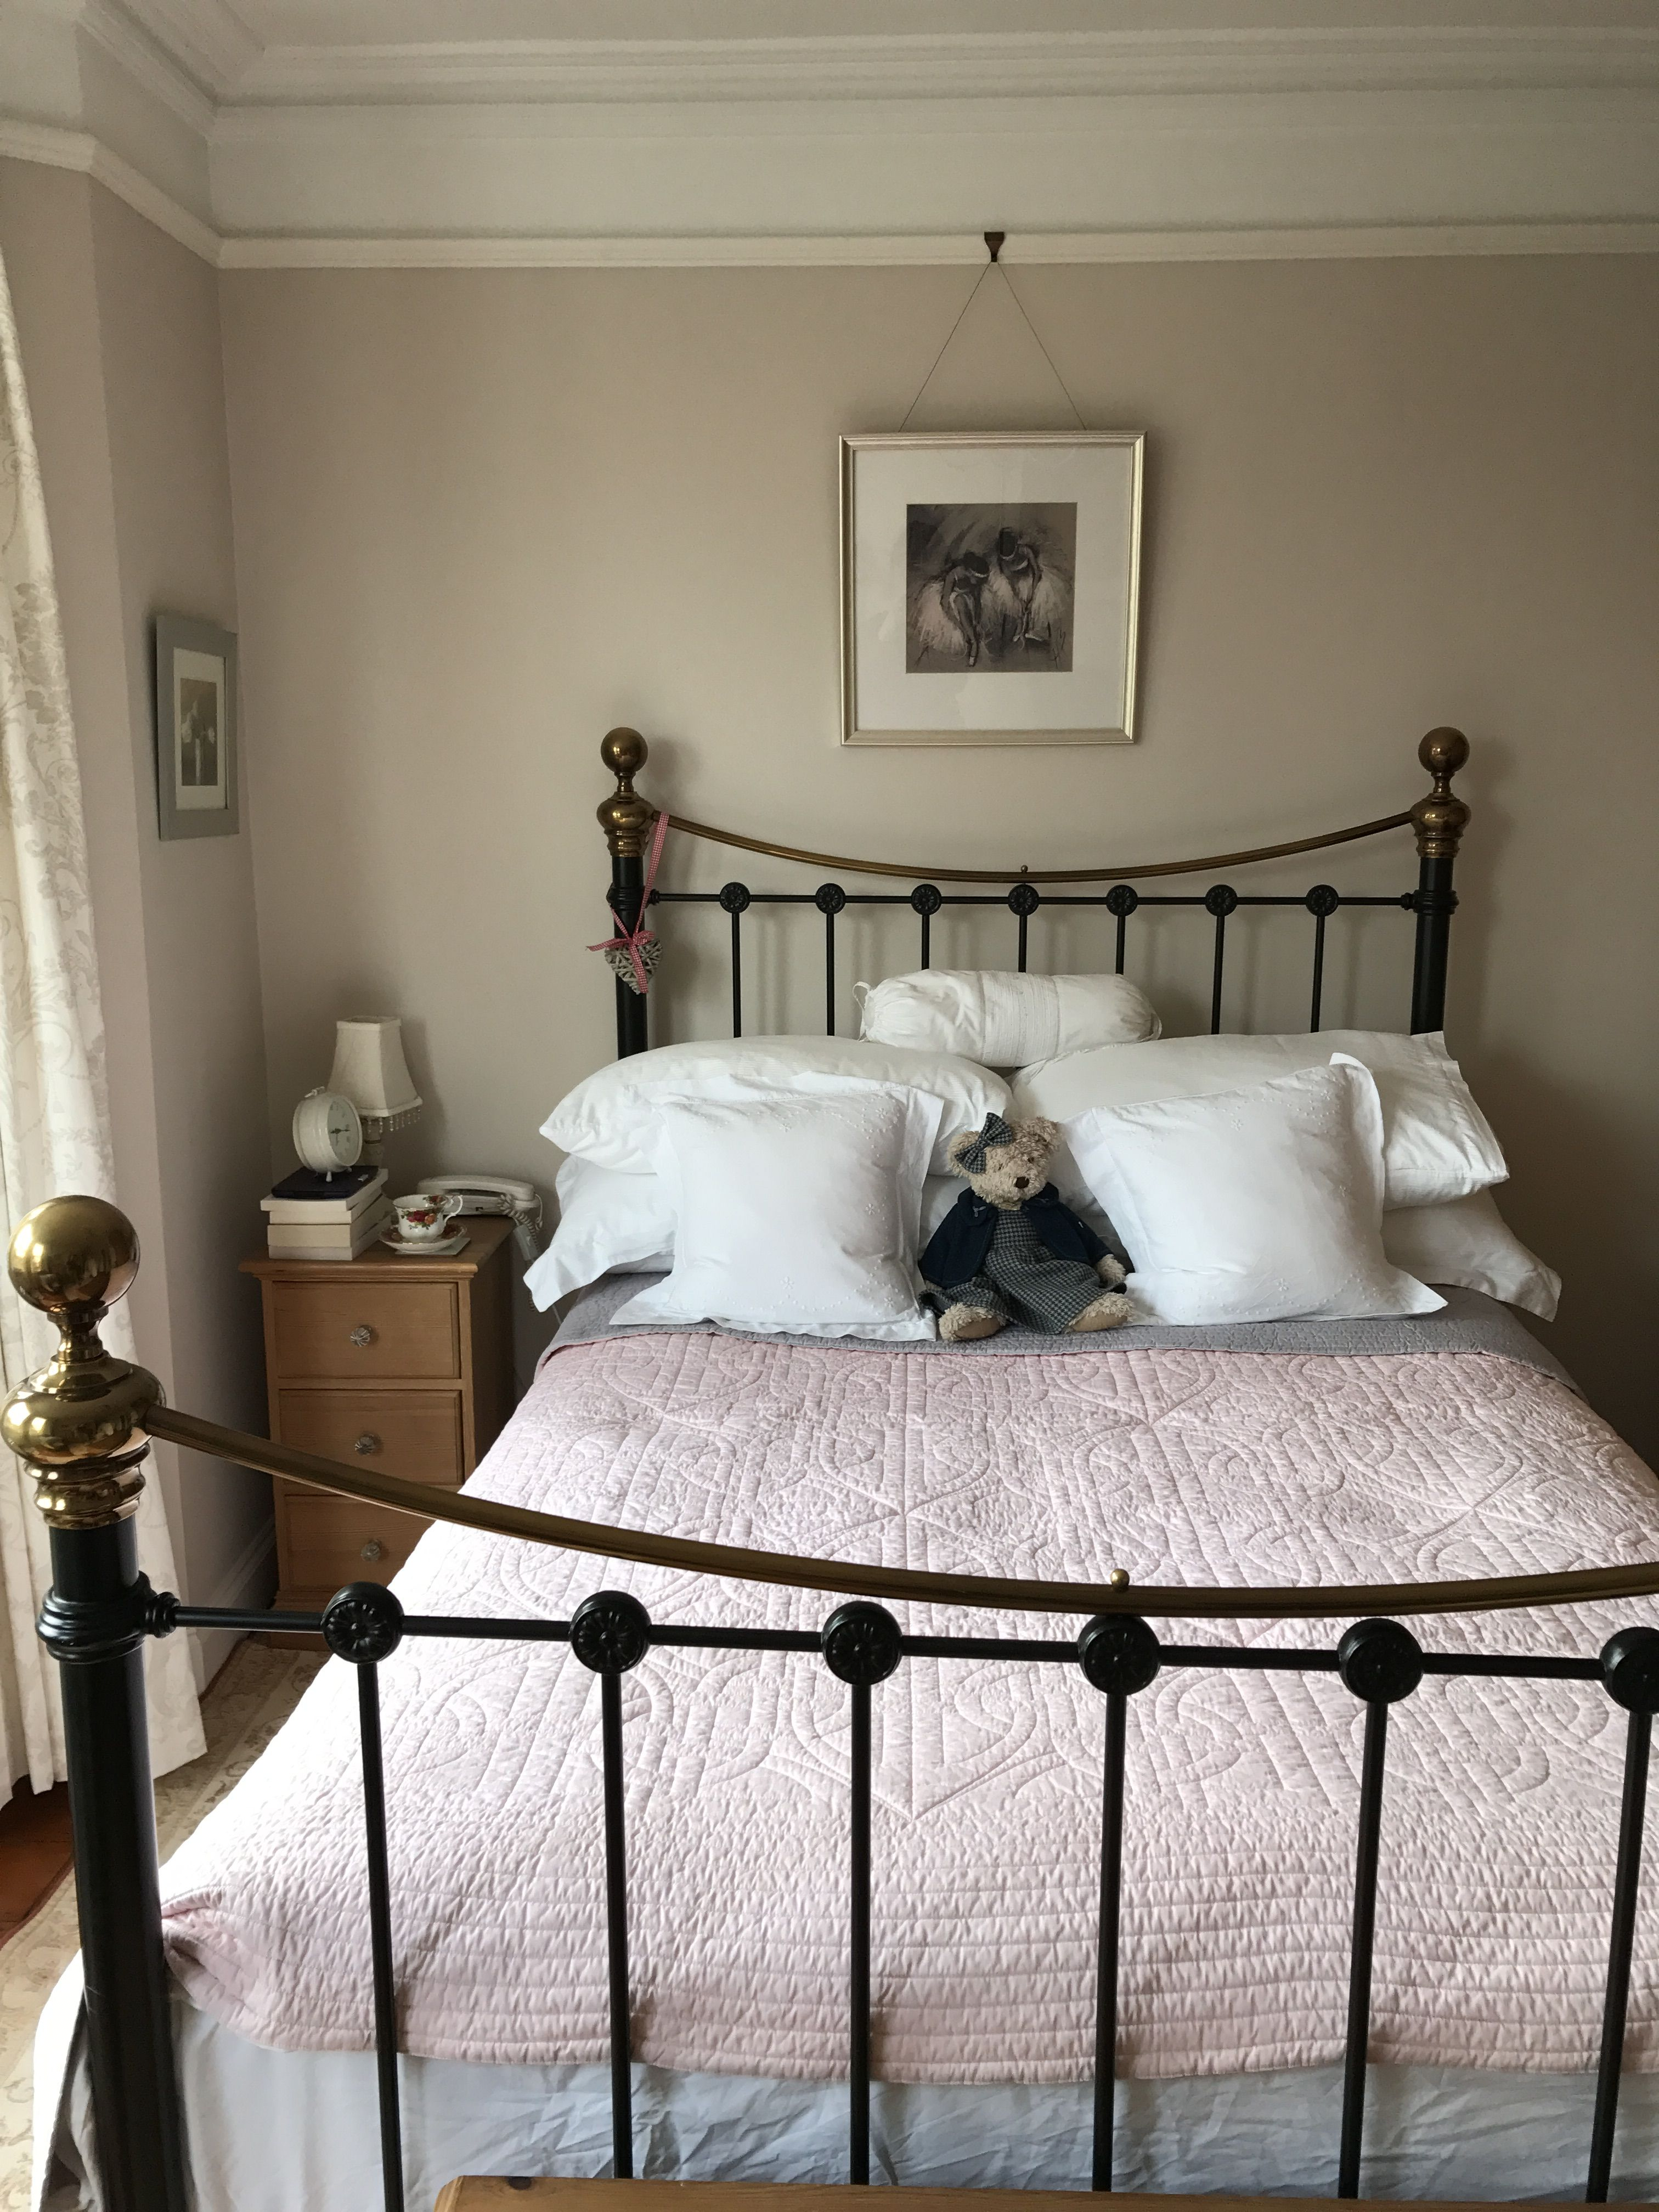 Home Original Bedstead Bed And Throw Egyptian Cotton